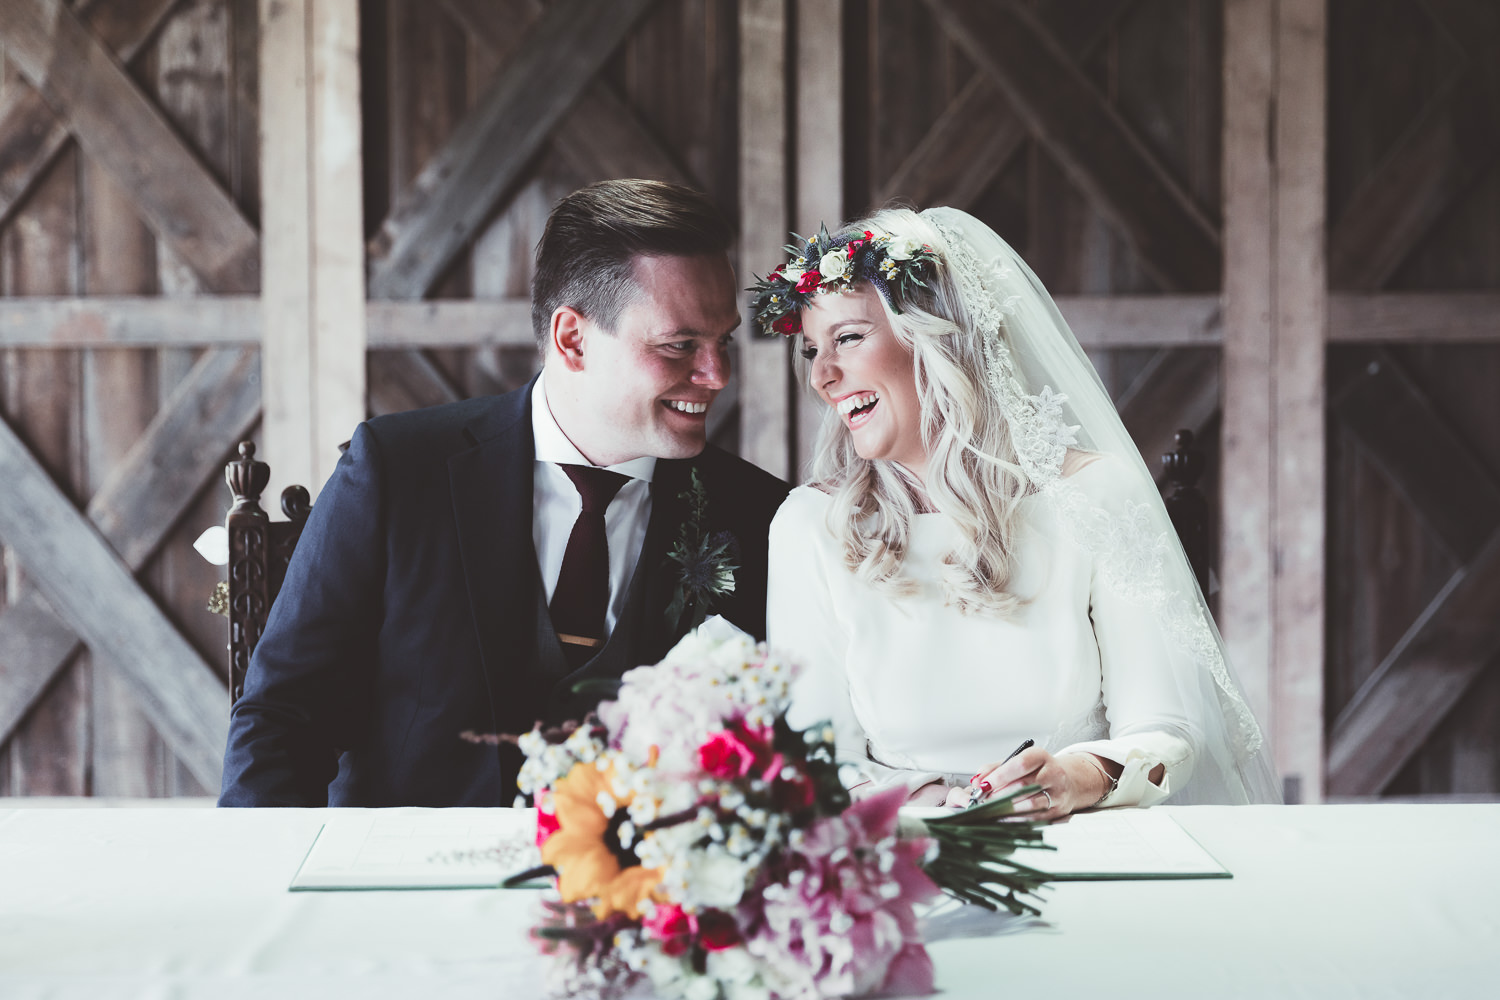 Deswell Court Rustic Barn Wedding with Bright Flowers & Gold BM Gowns